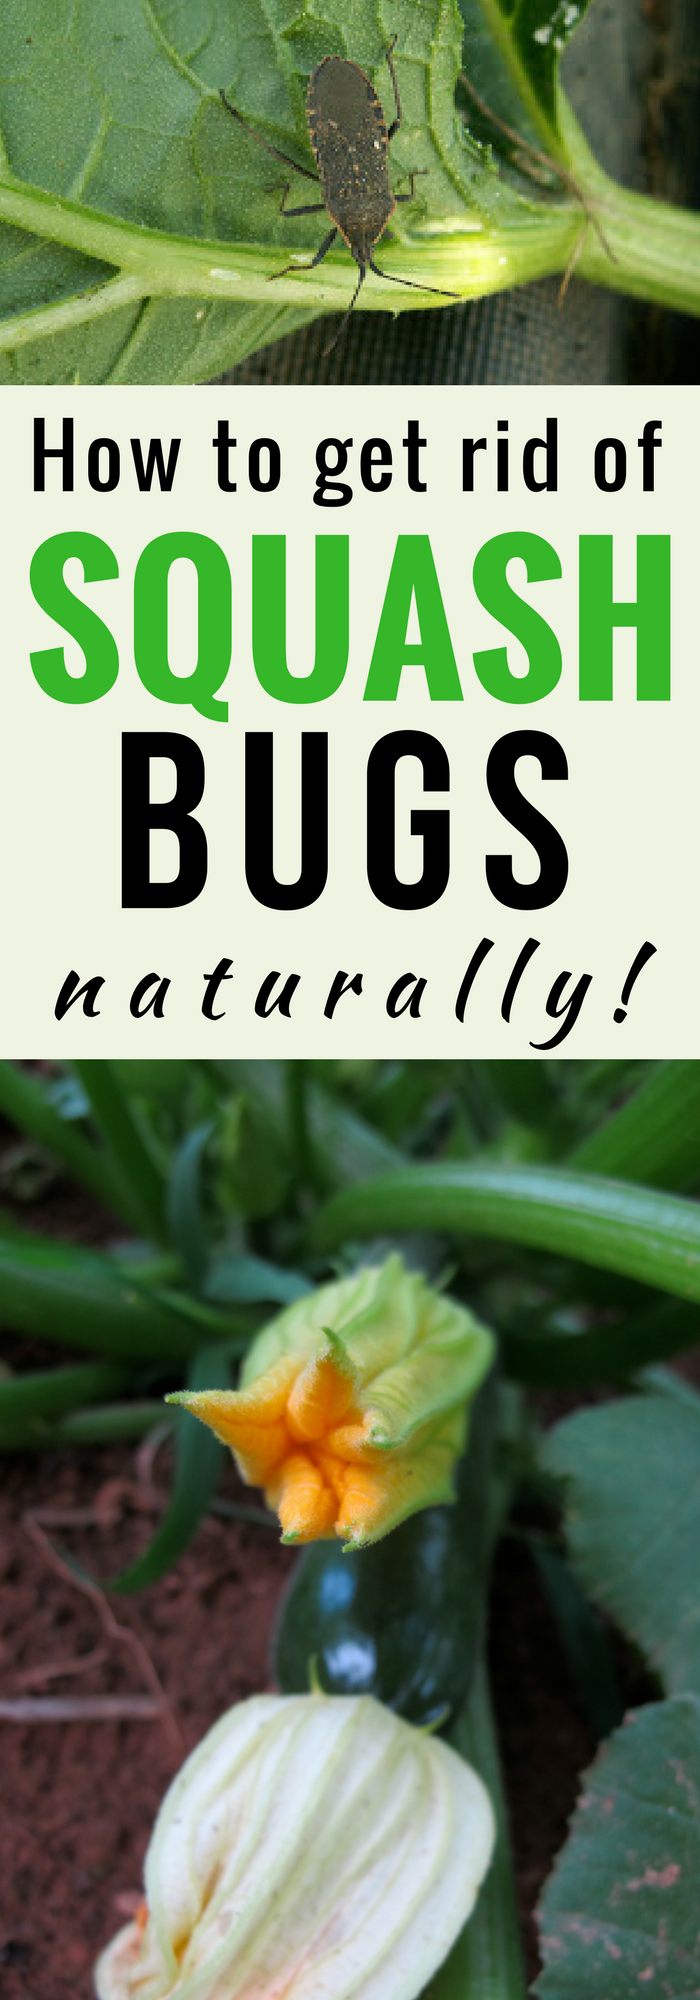 Get Rid Of Squash Bugs Naturally